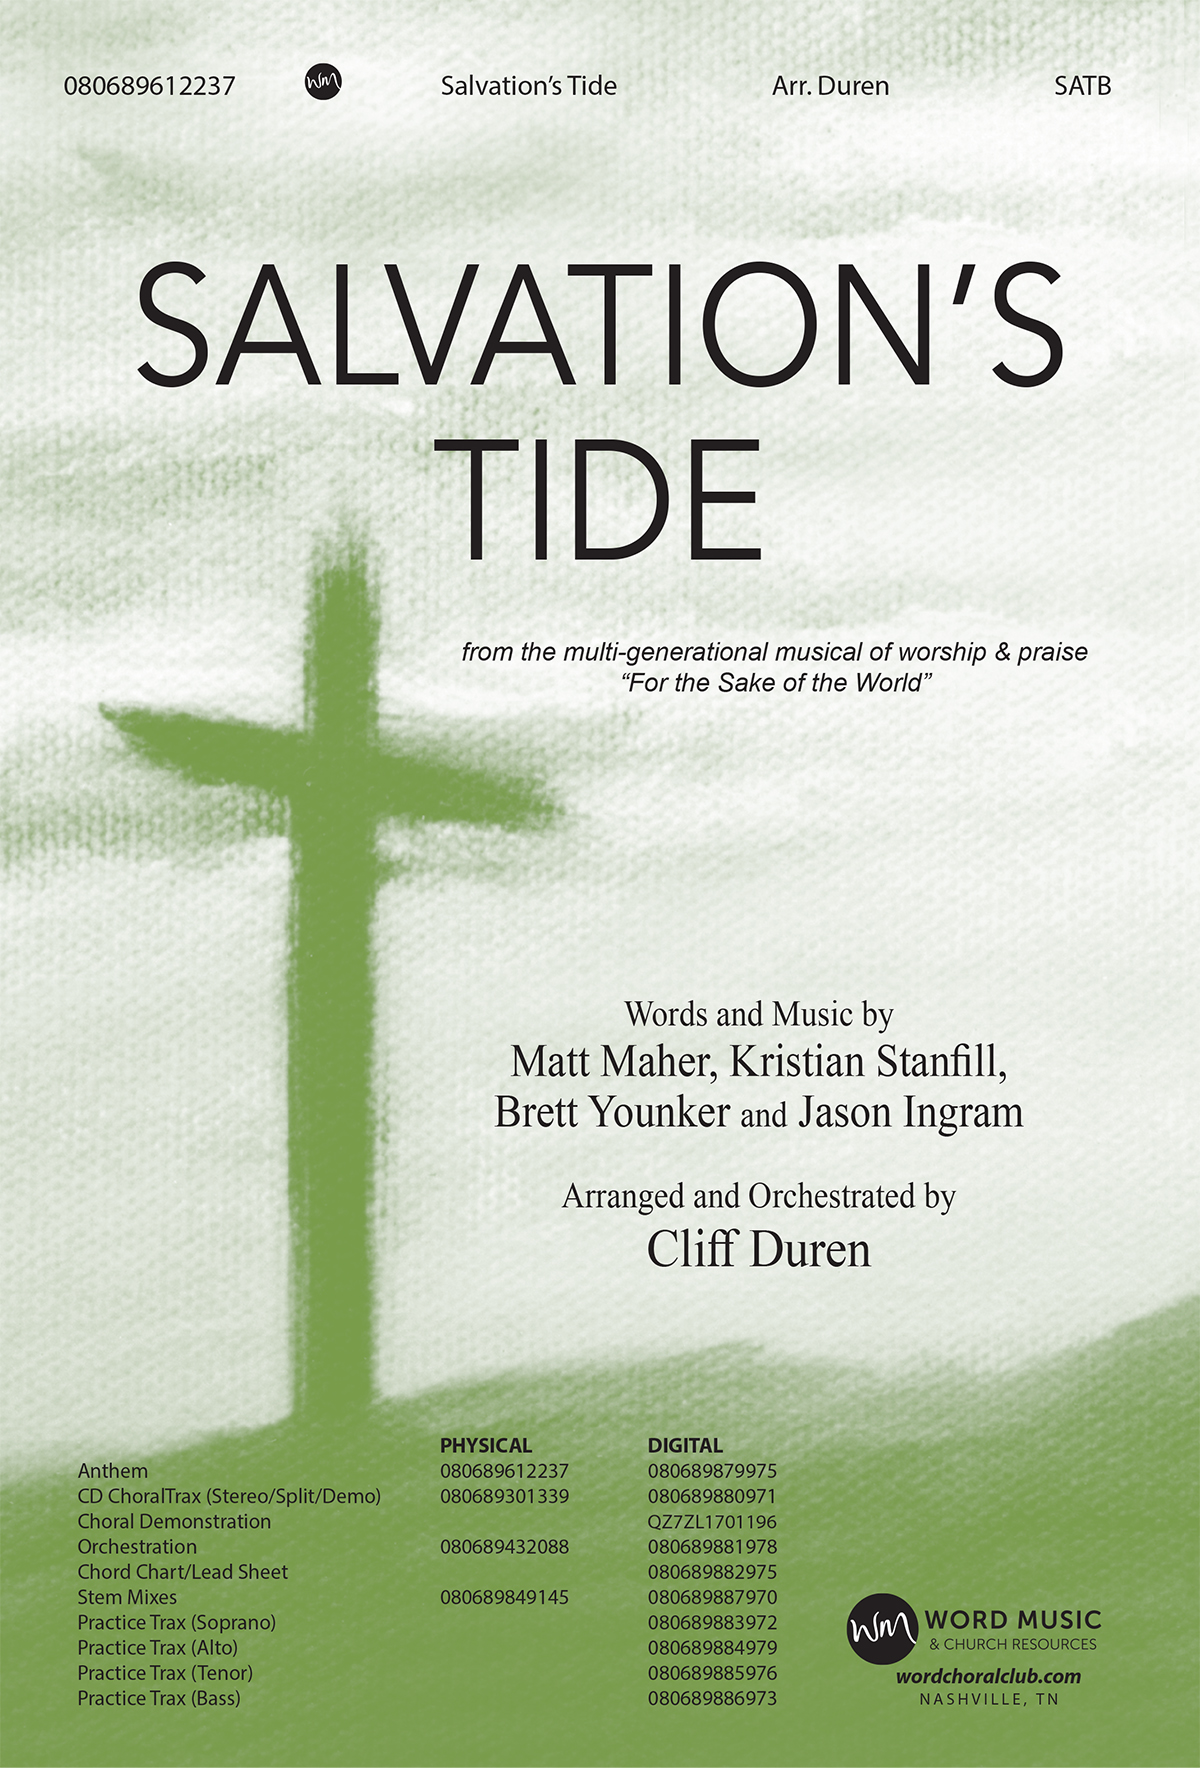 Salvation's Tide